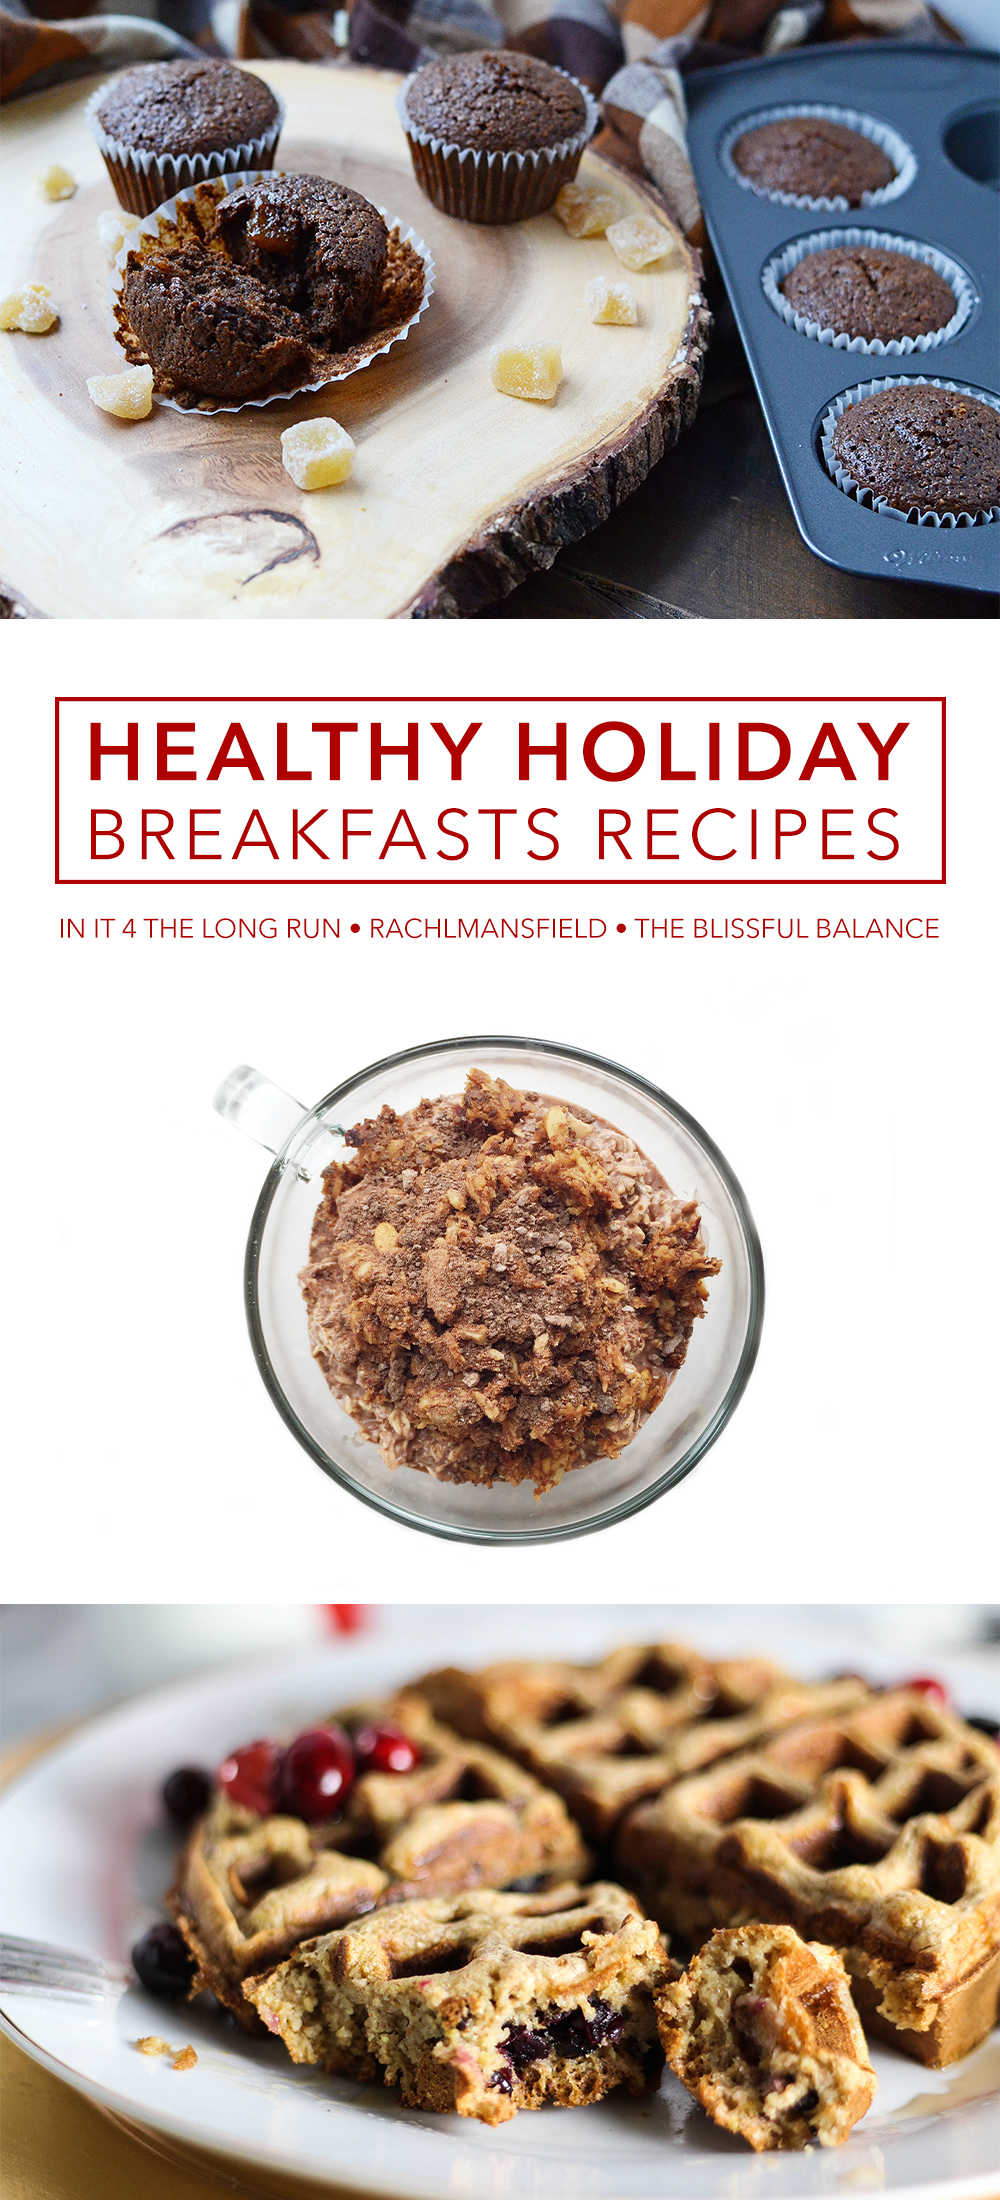 Healthy Holiday Breakfast Recipes